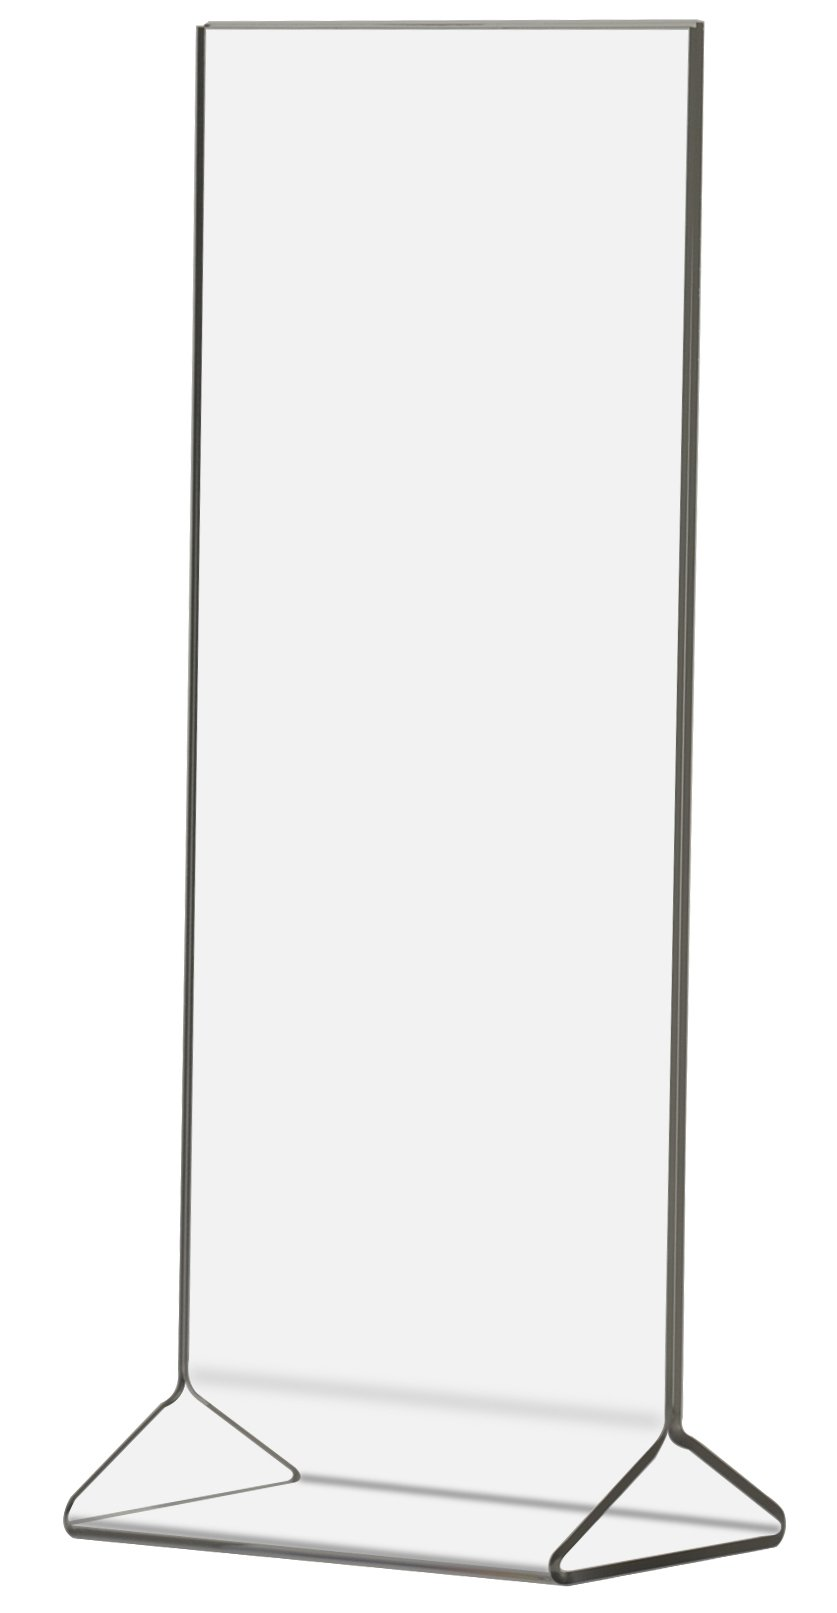 Marketing Holders 4'' w x 9'' h Table Ad Frame Top Load Menu Promo POP Display Signage Stand Clear Acrylic 1 Pack of 8